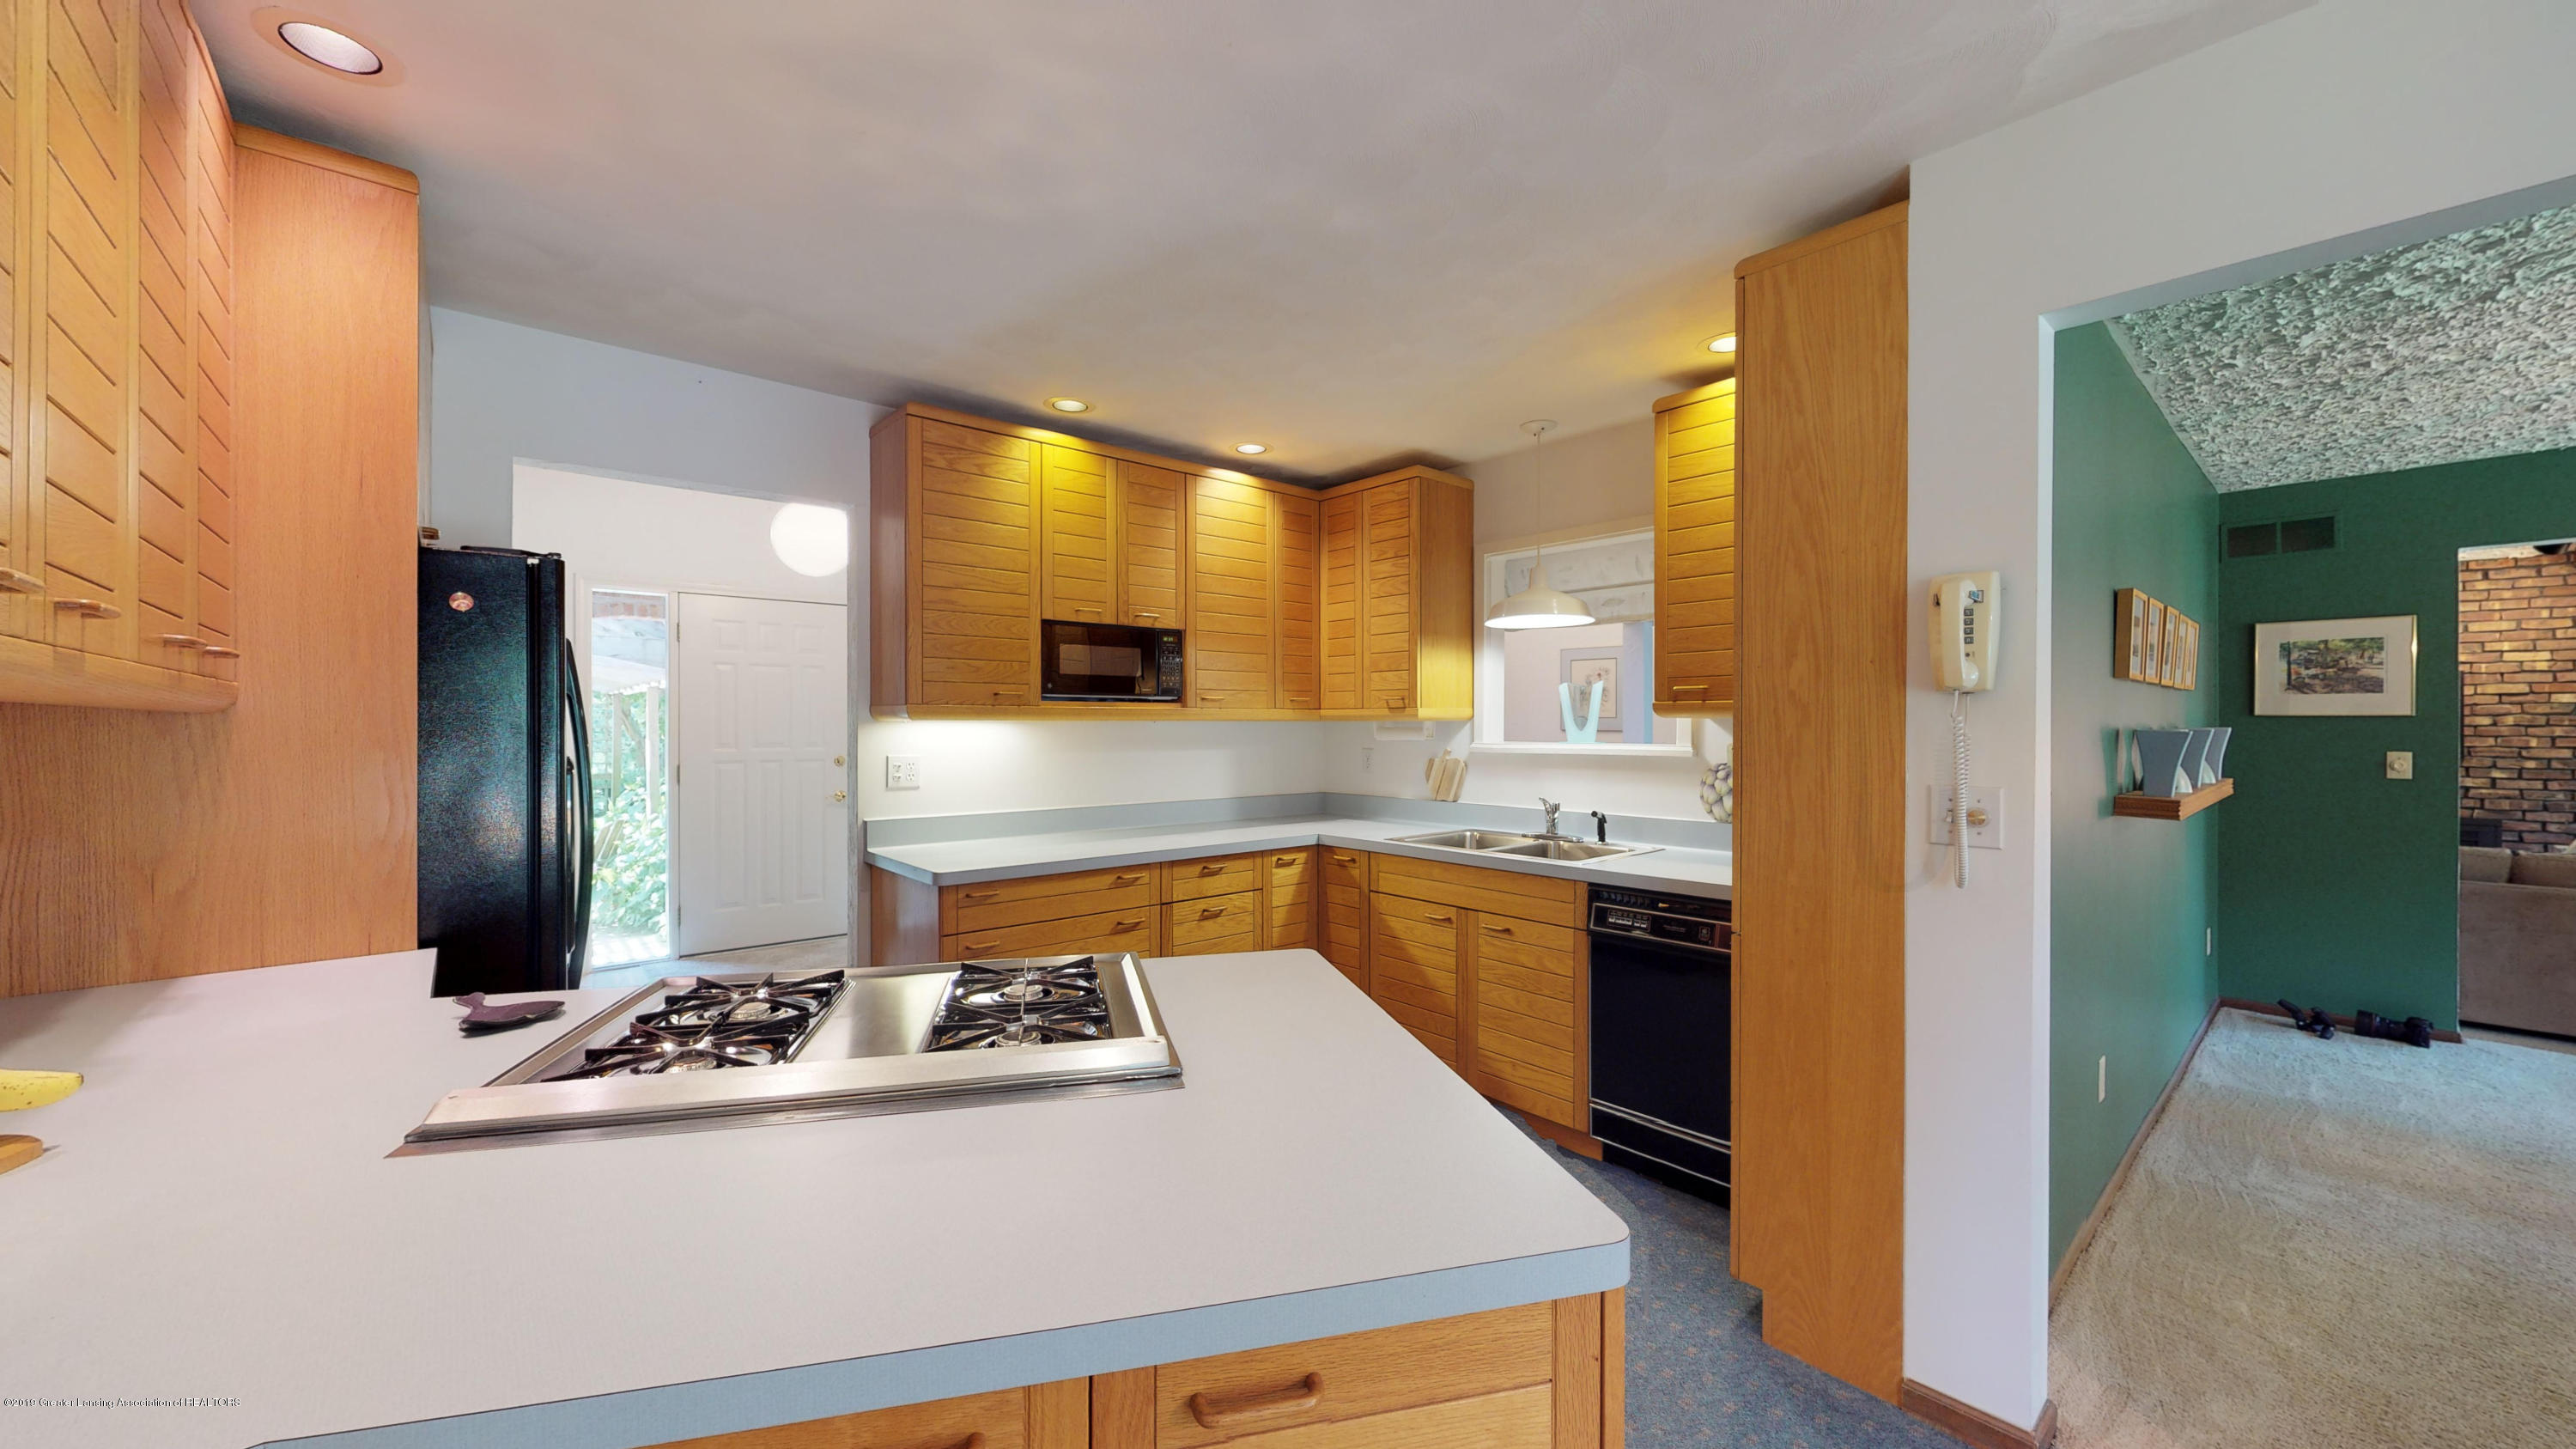 3708 David Ln - 3708-David-Lane-Kitchen_091434 - 22